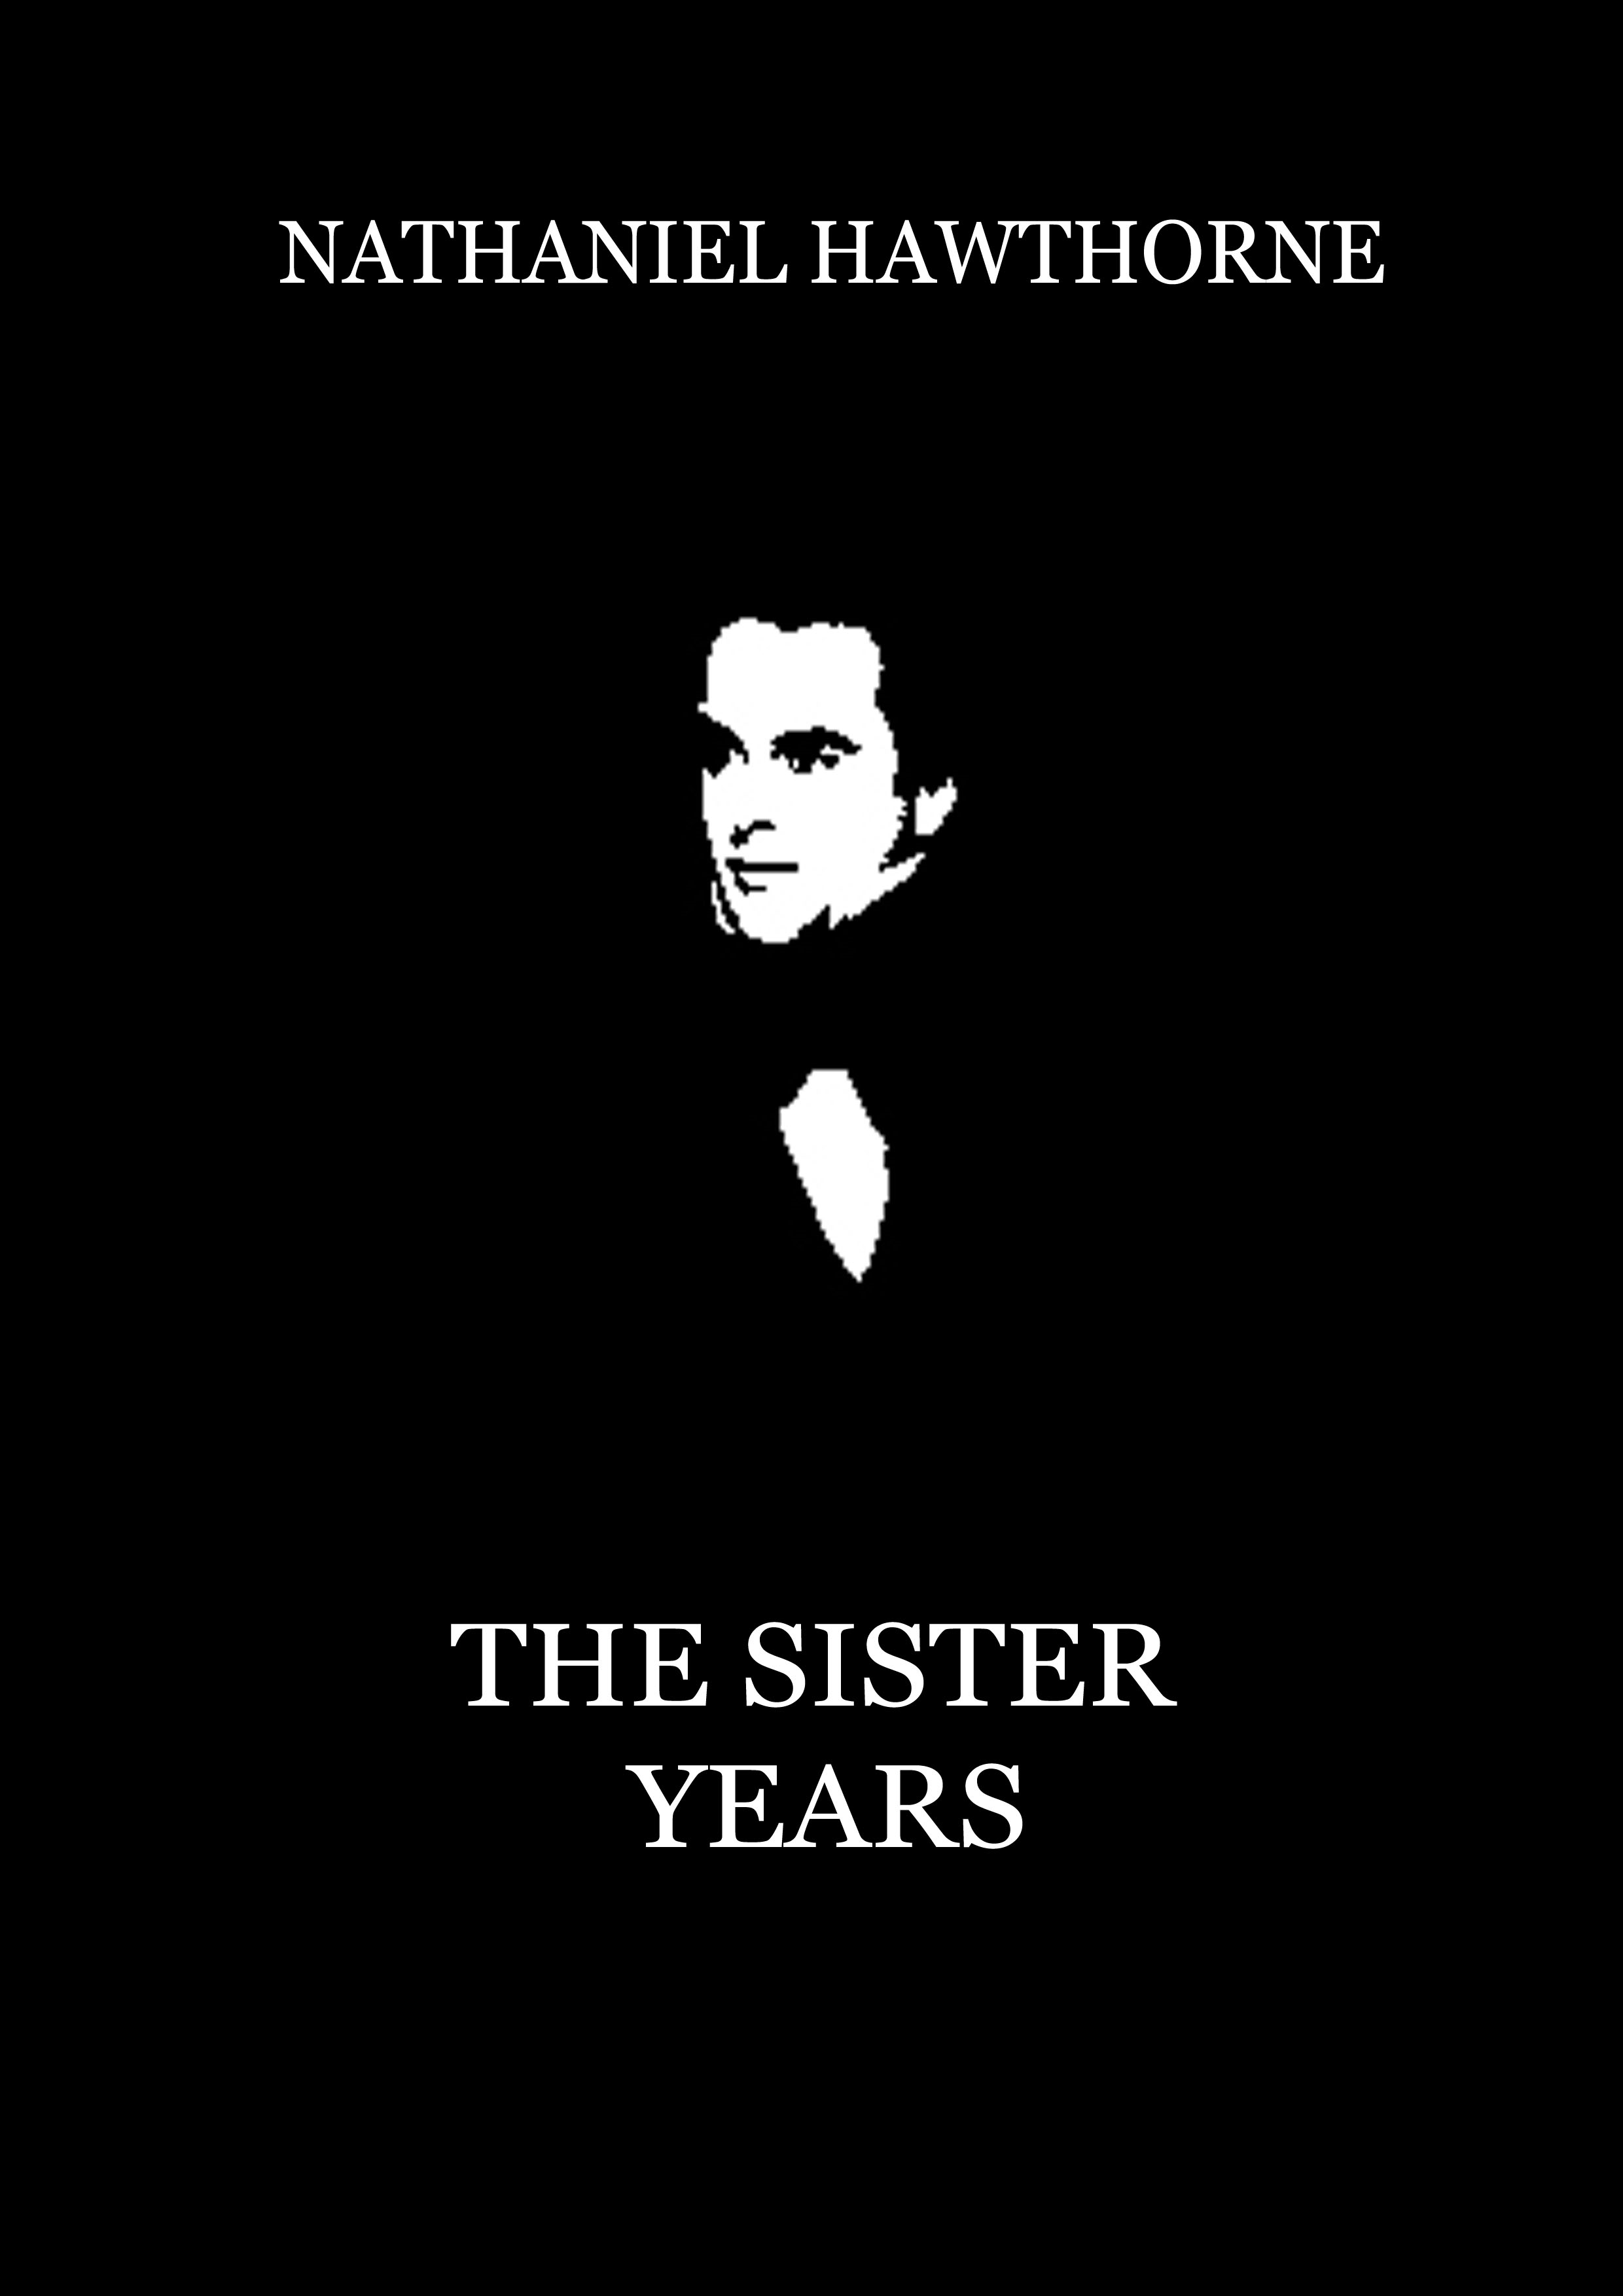 Nathaniel Hawthorne - The Sister Years